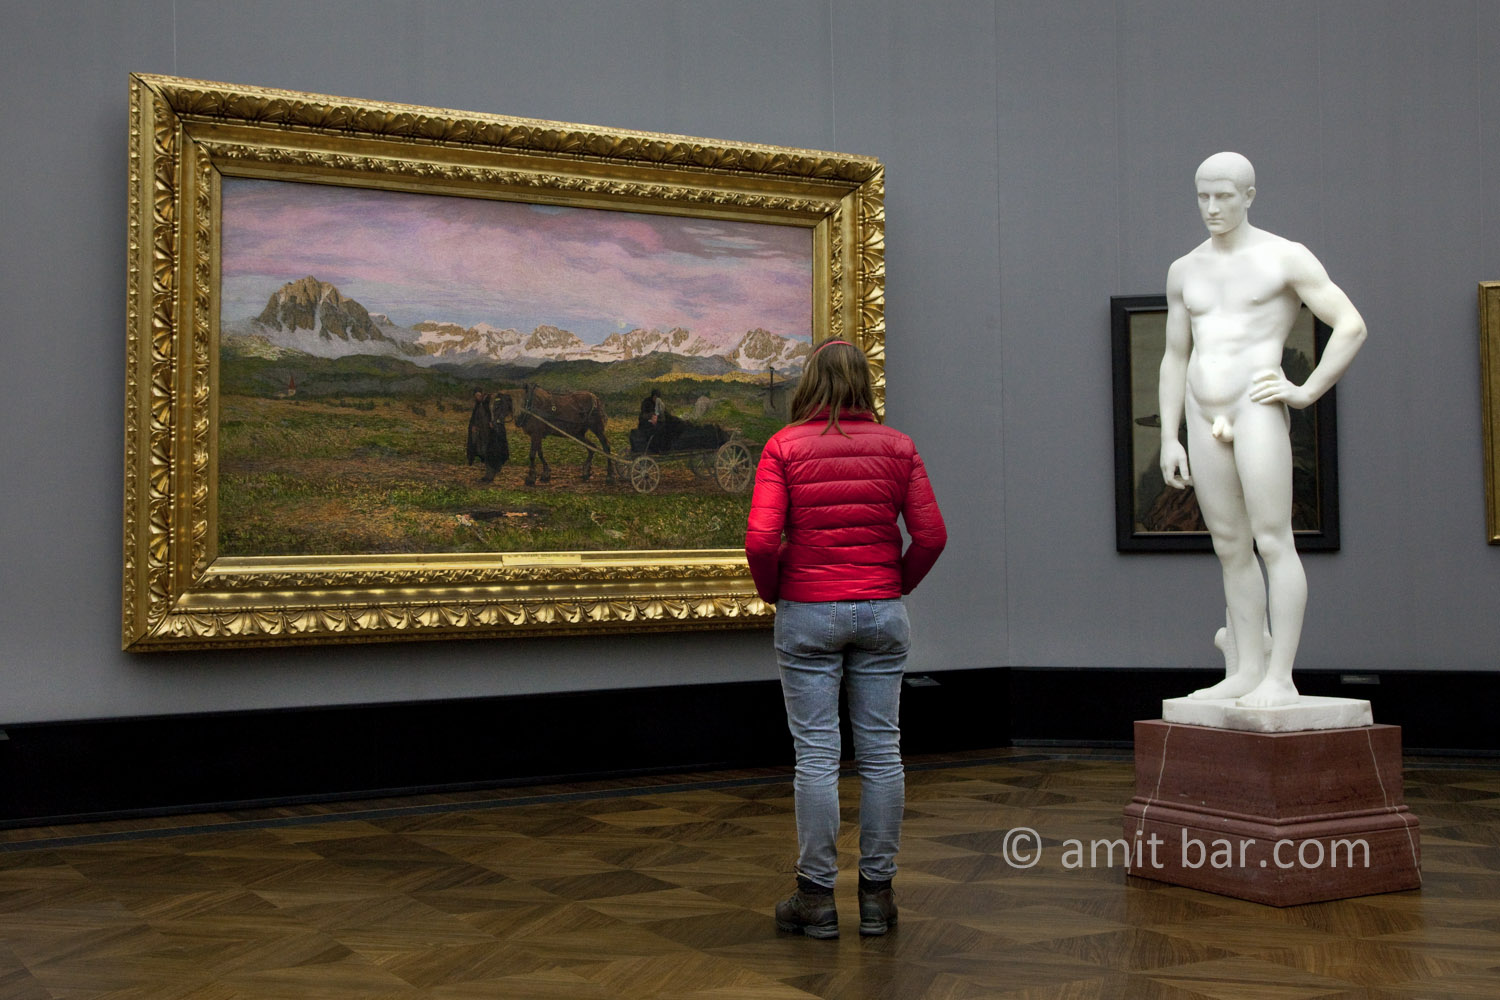 Berlin: Thinking.  A visitor at the museum, Alte Nationalgalerie